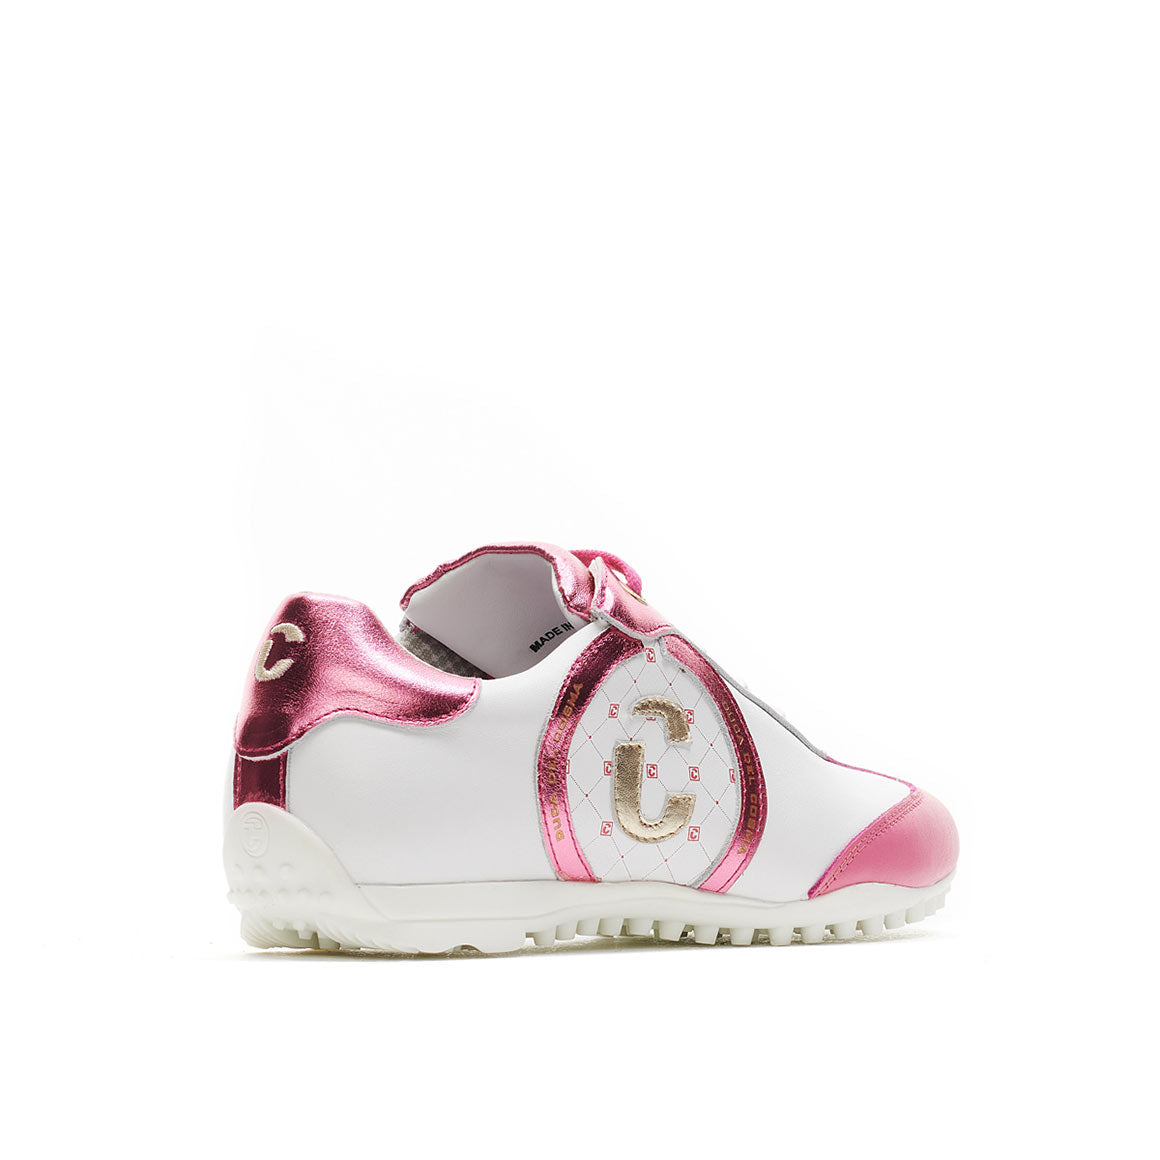 Women's Kubana White / Lilac Golf Shoe